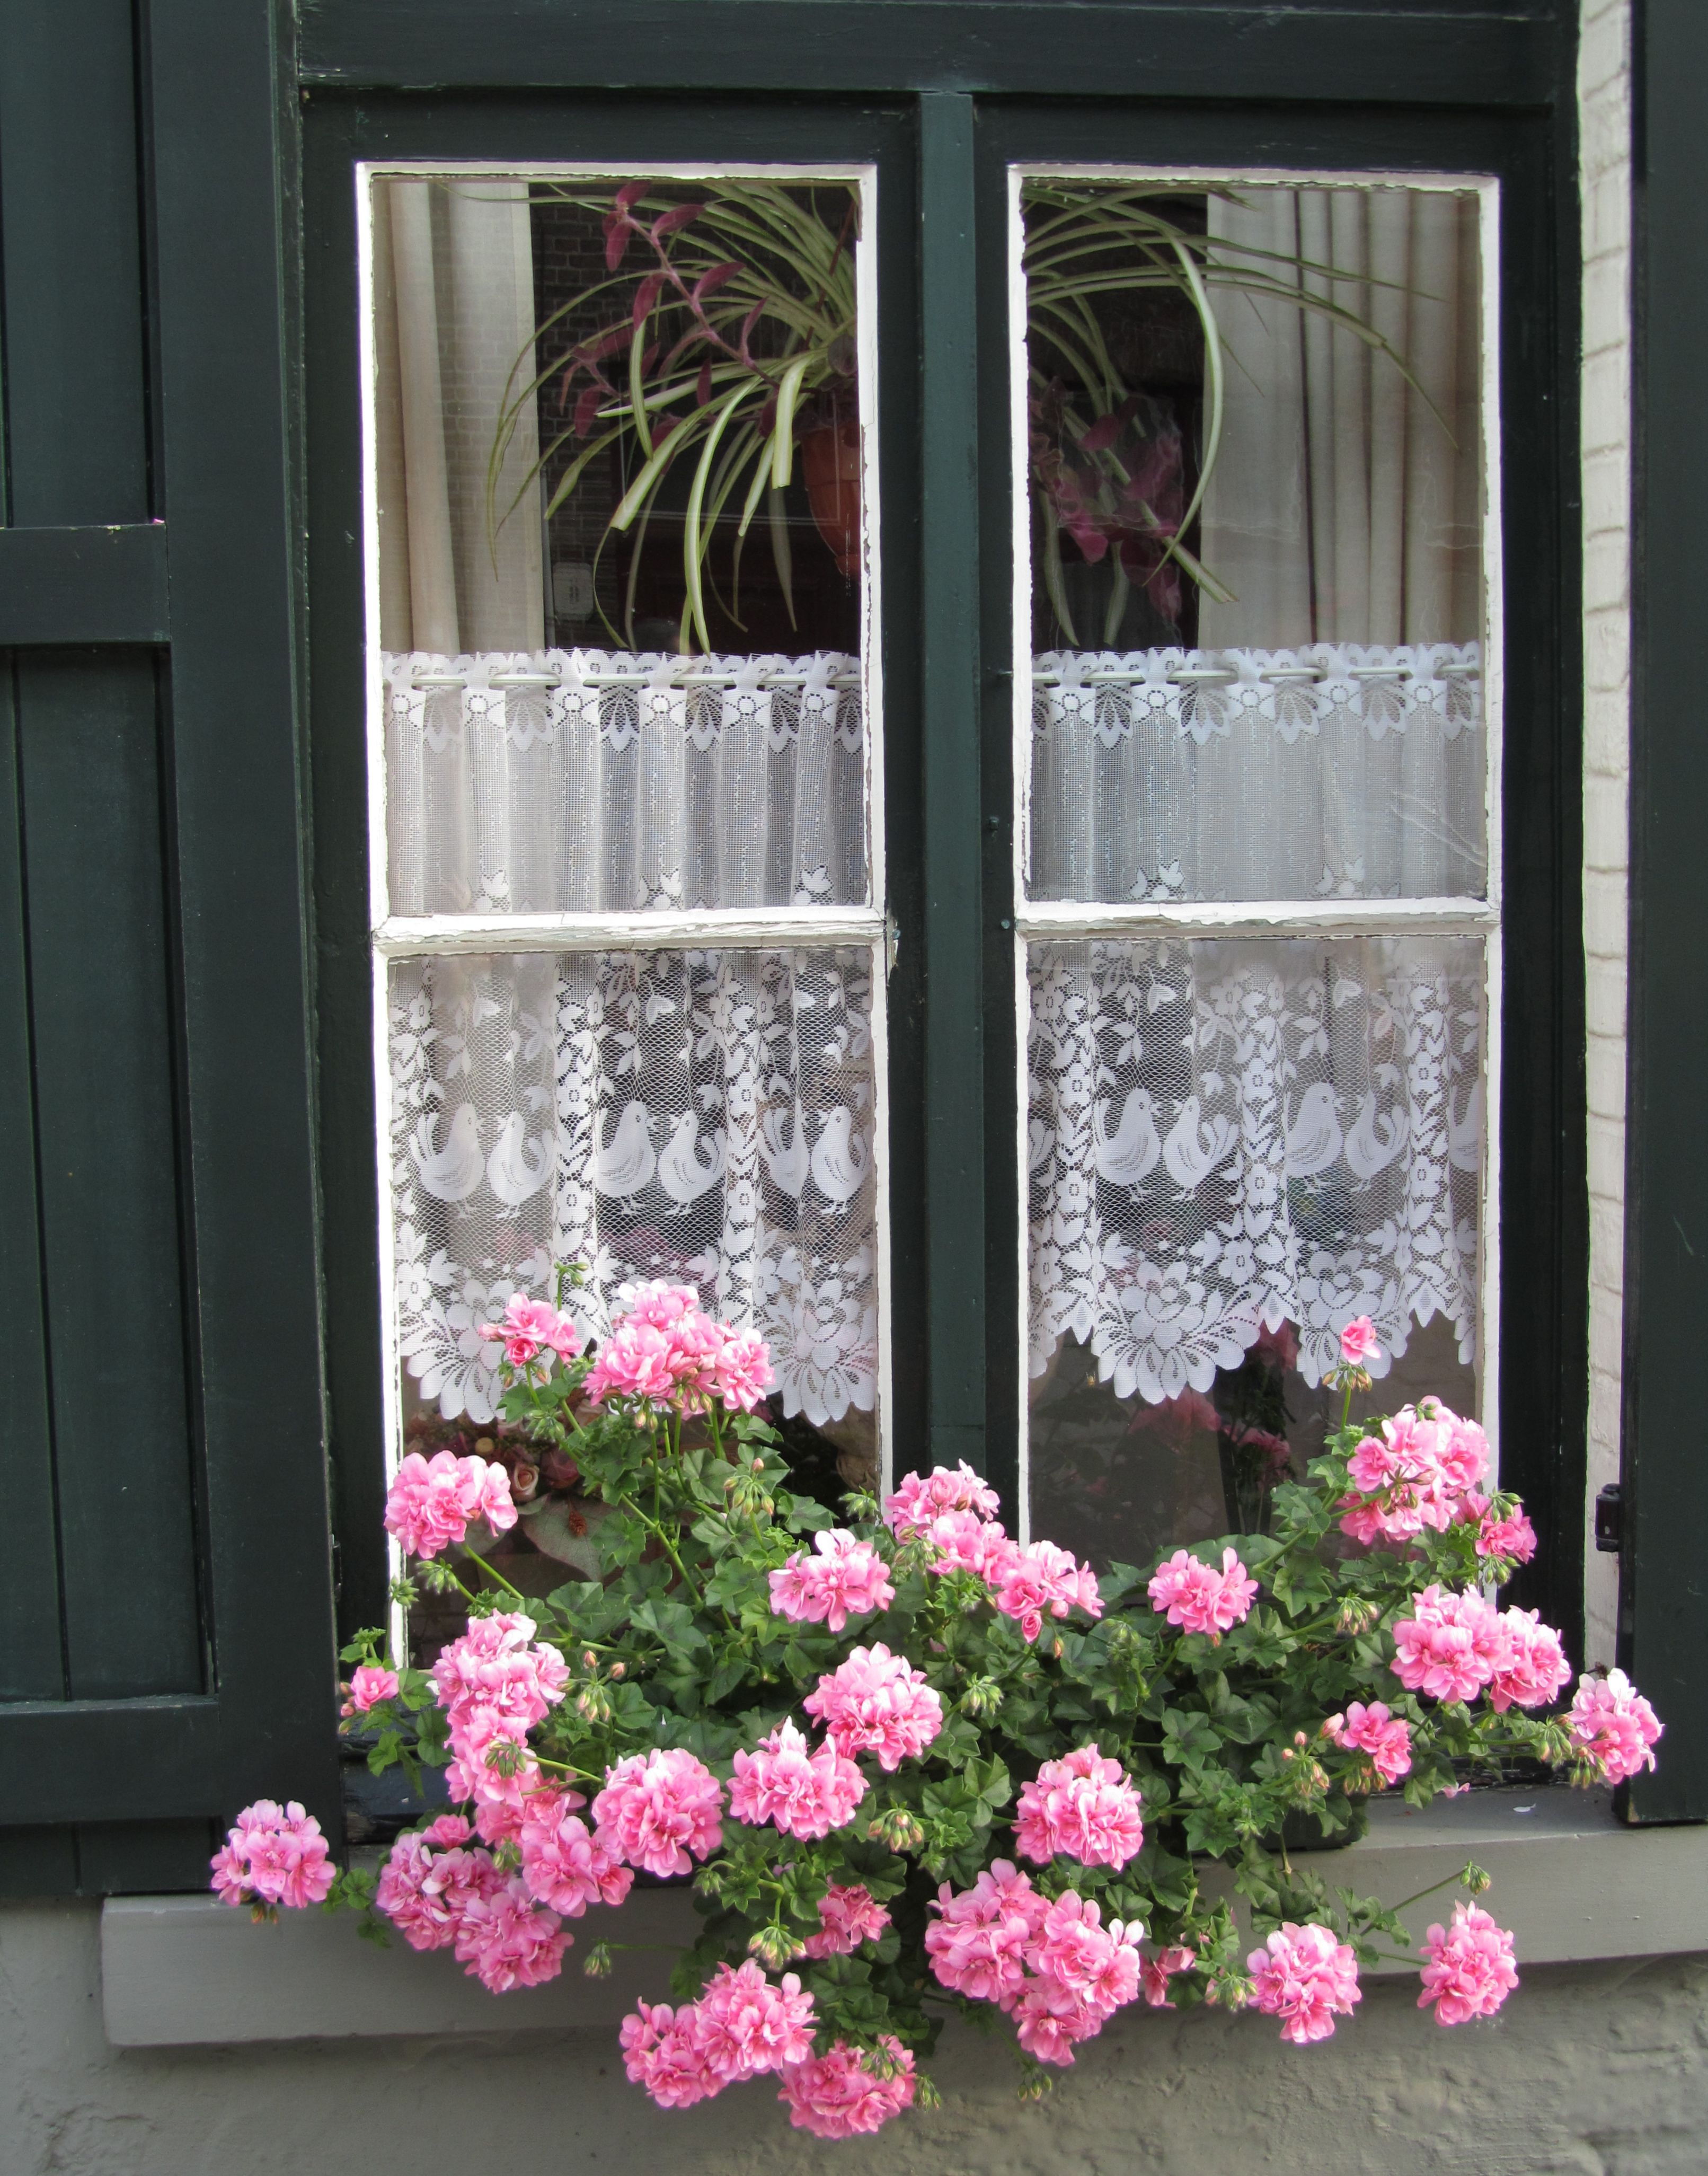 belgium window with lace google search theme dutch belgium window with lace google search